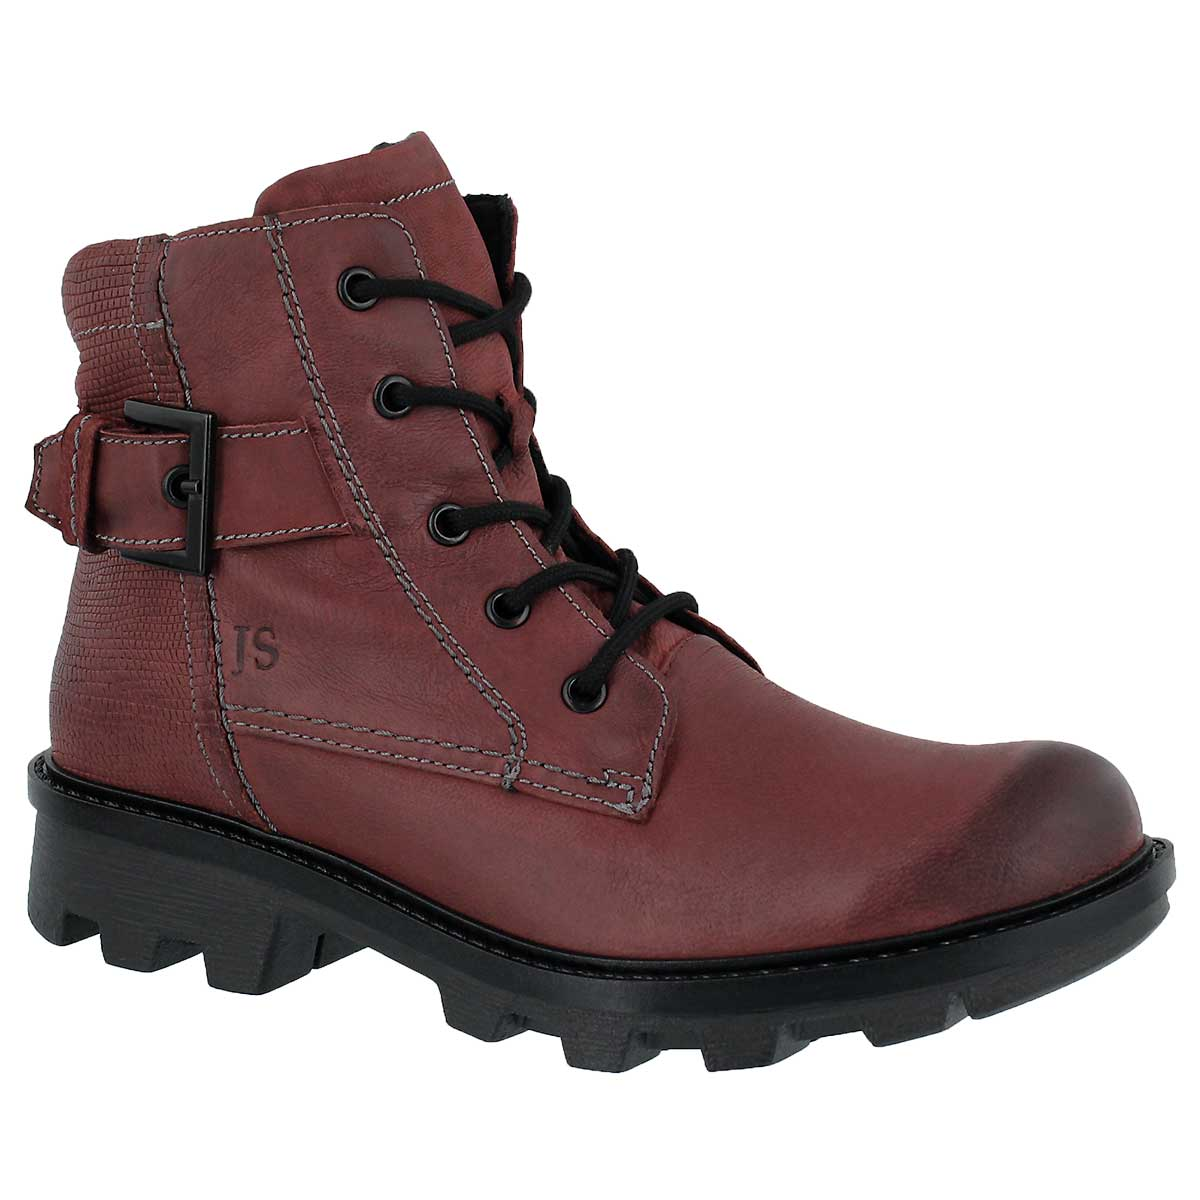 Women's MARILYN 03 bordo lace up boots